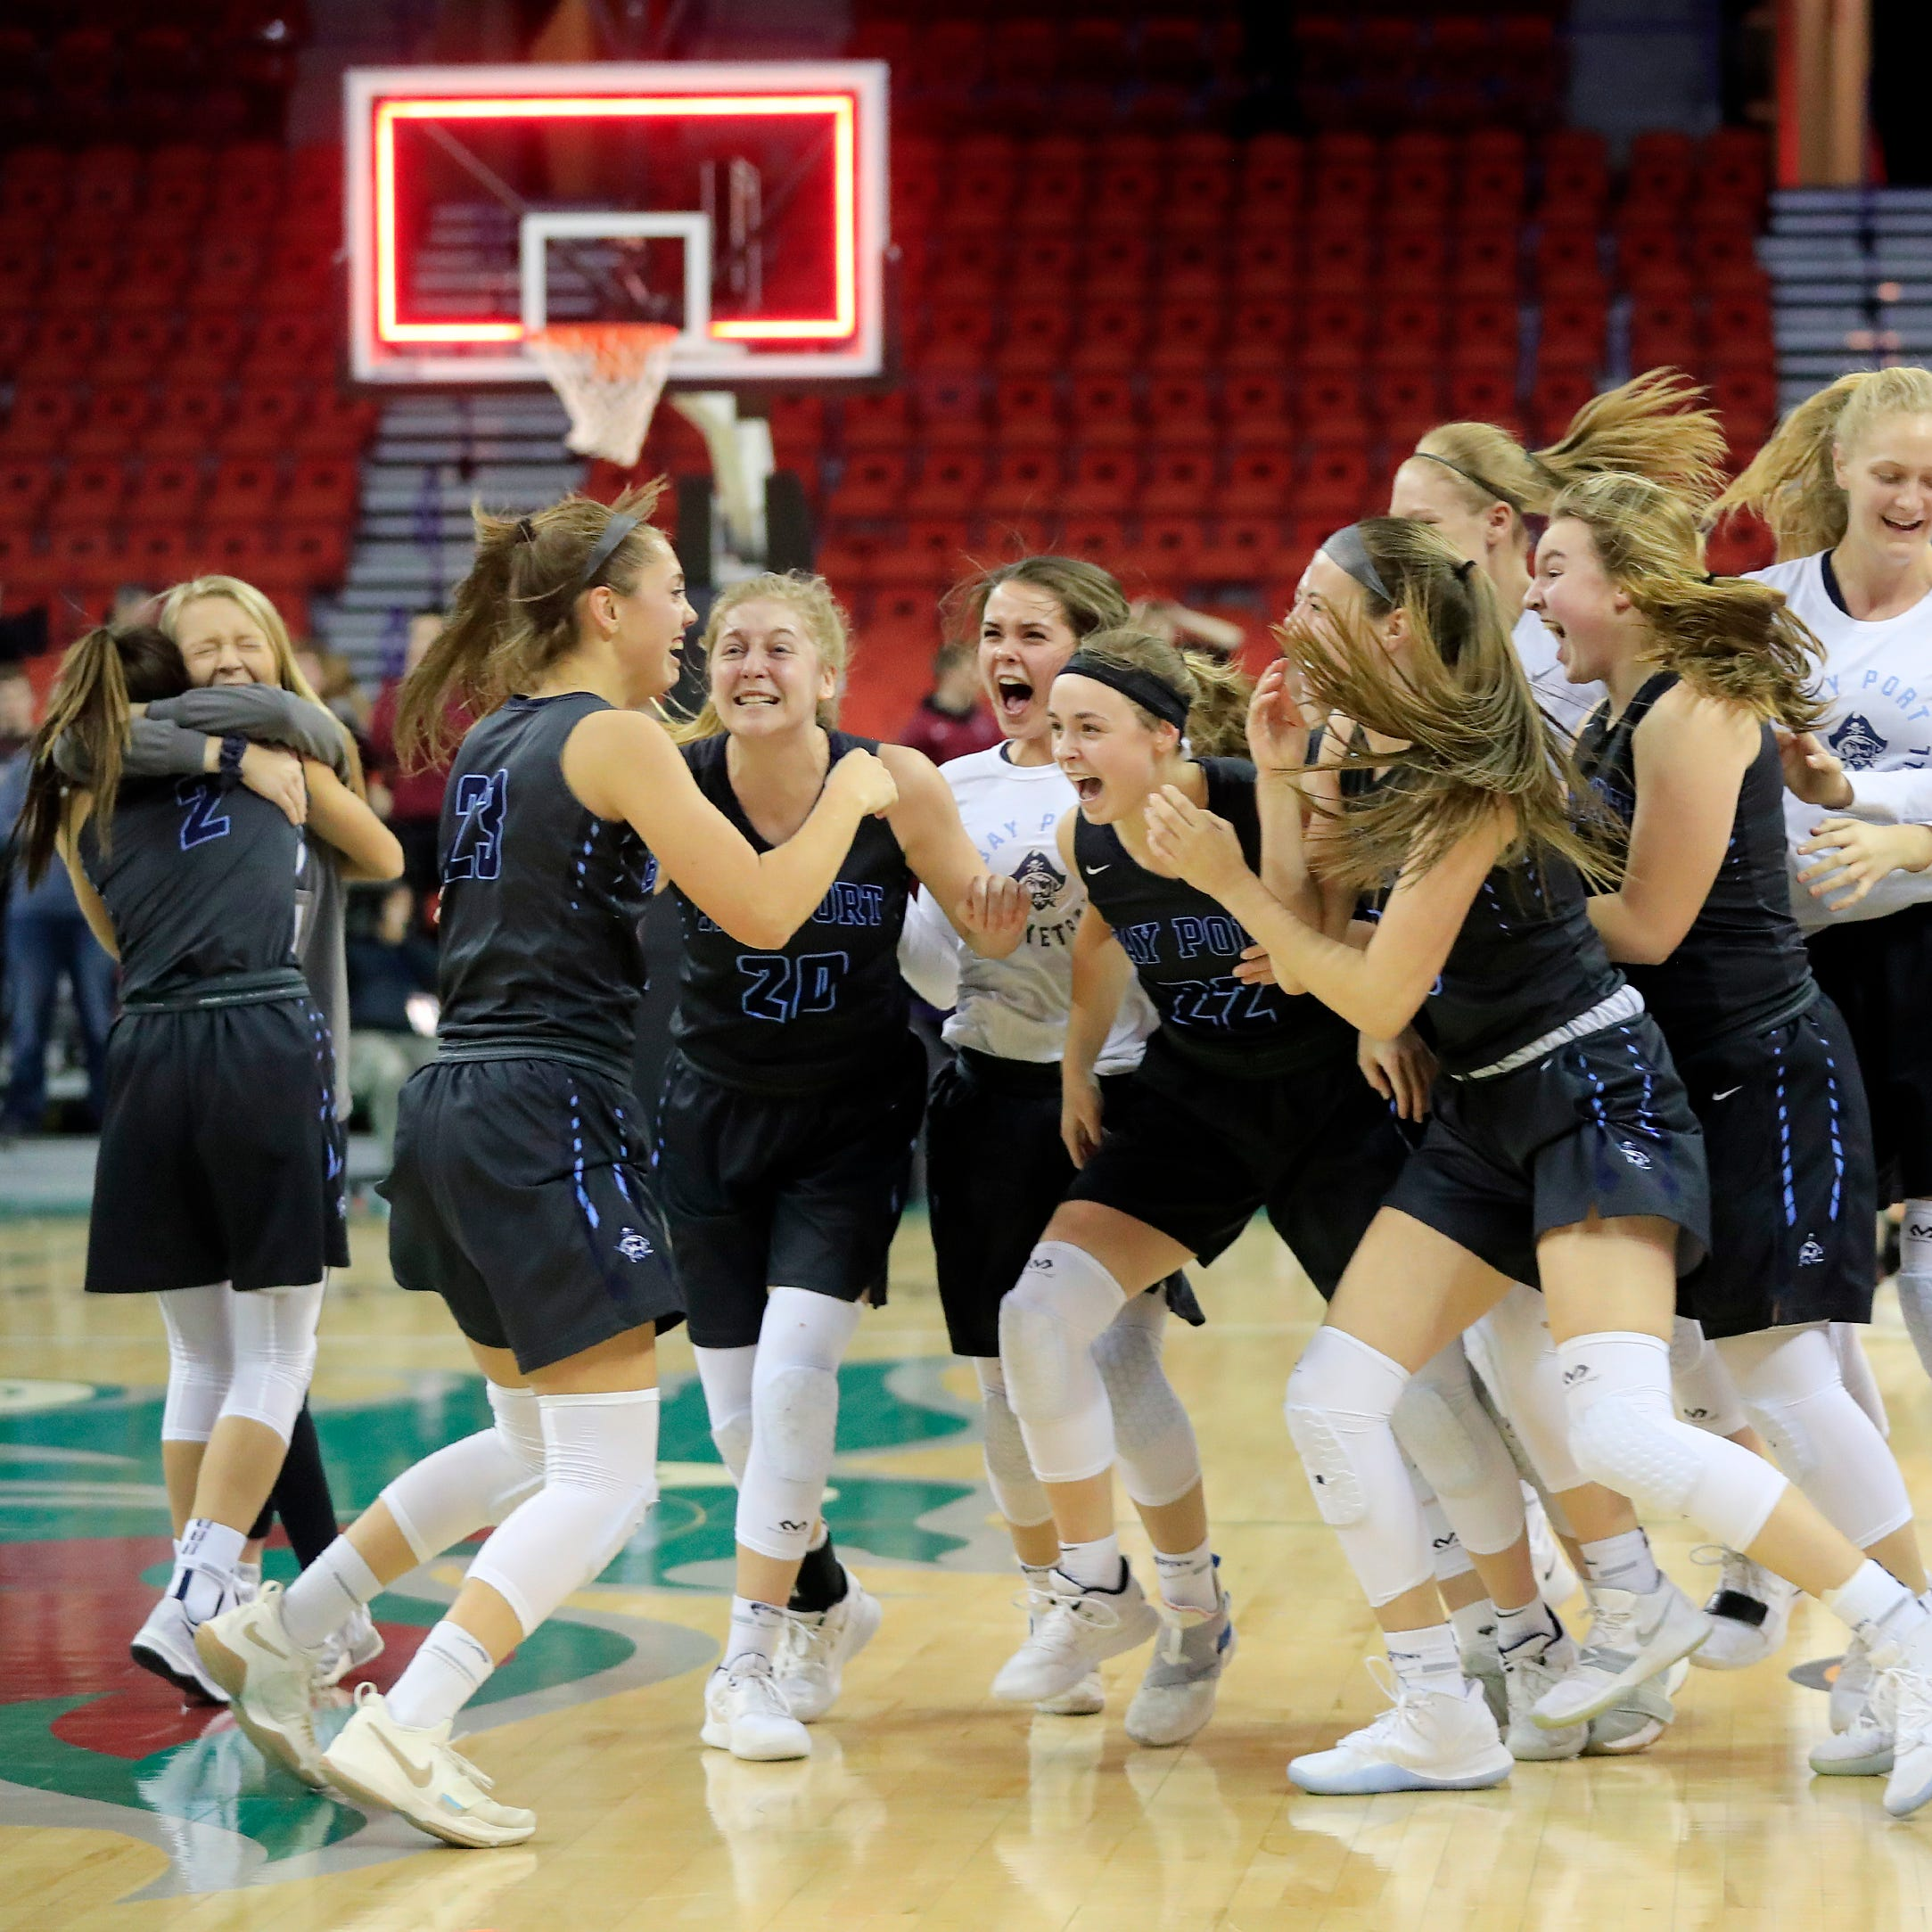 State title thriller: Bay Port wins Division 1 girls basketball championship